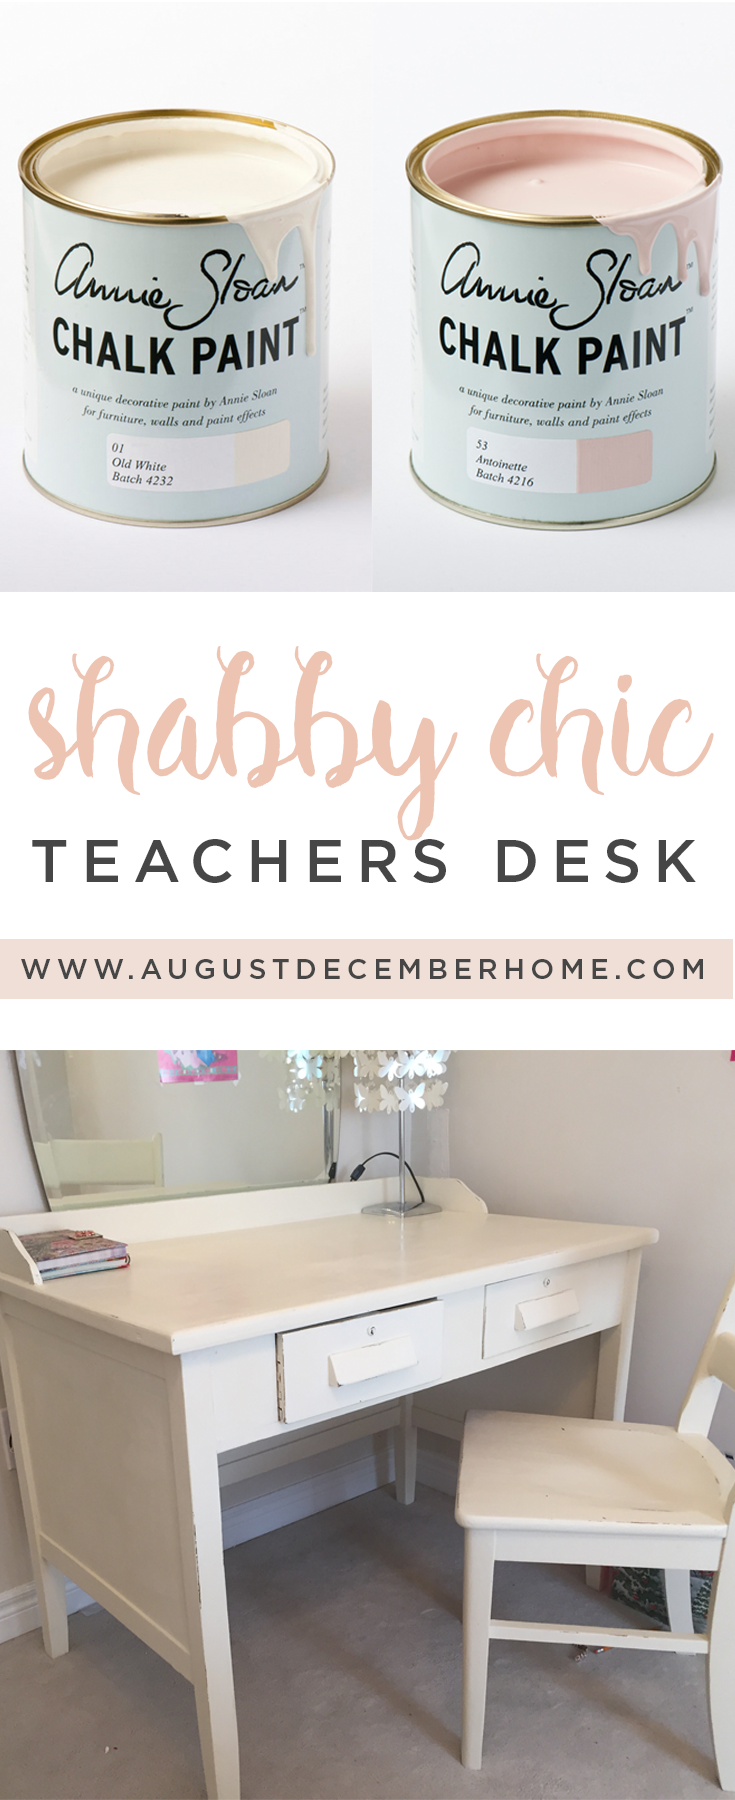 ShabbyChicTeachers_pin